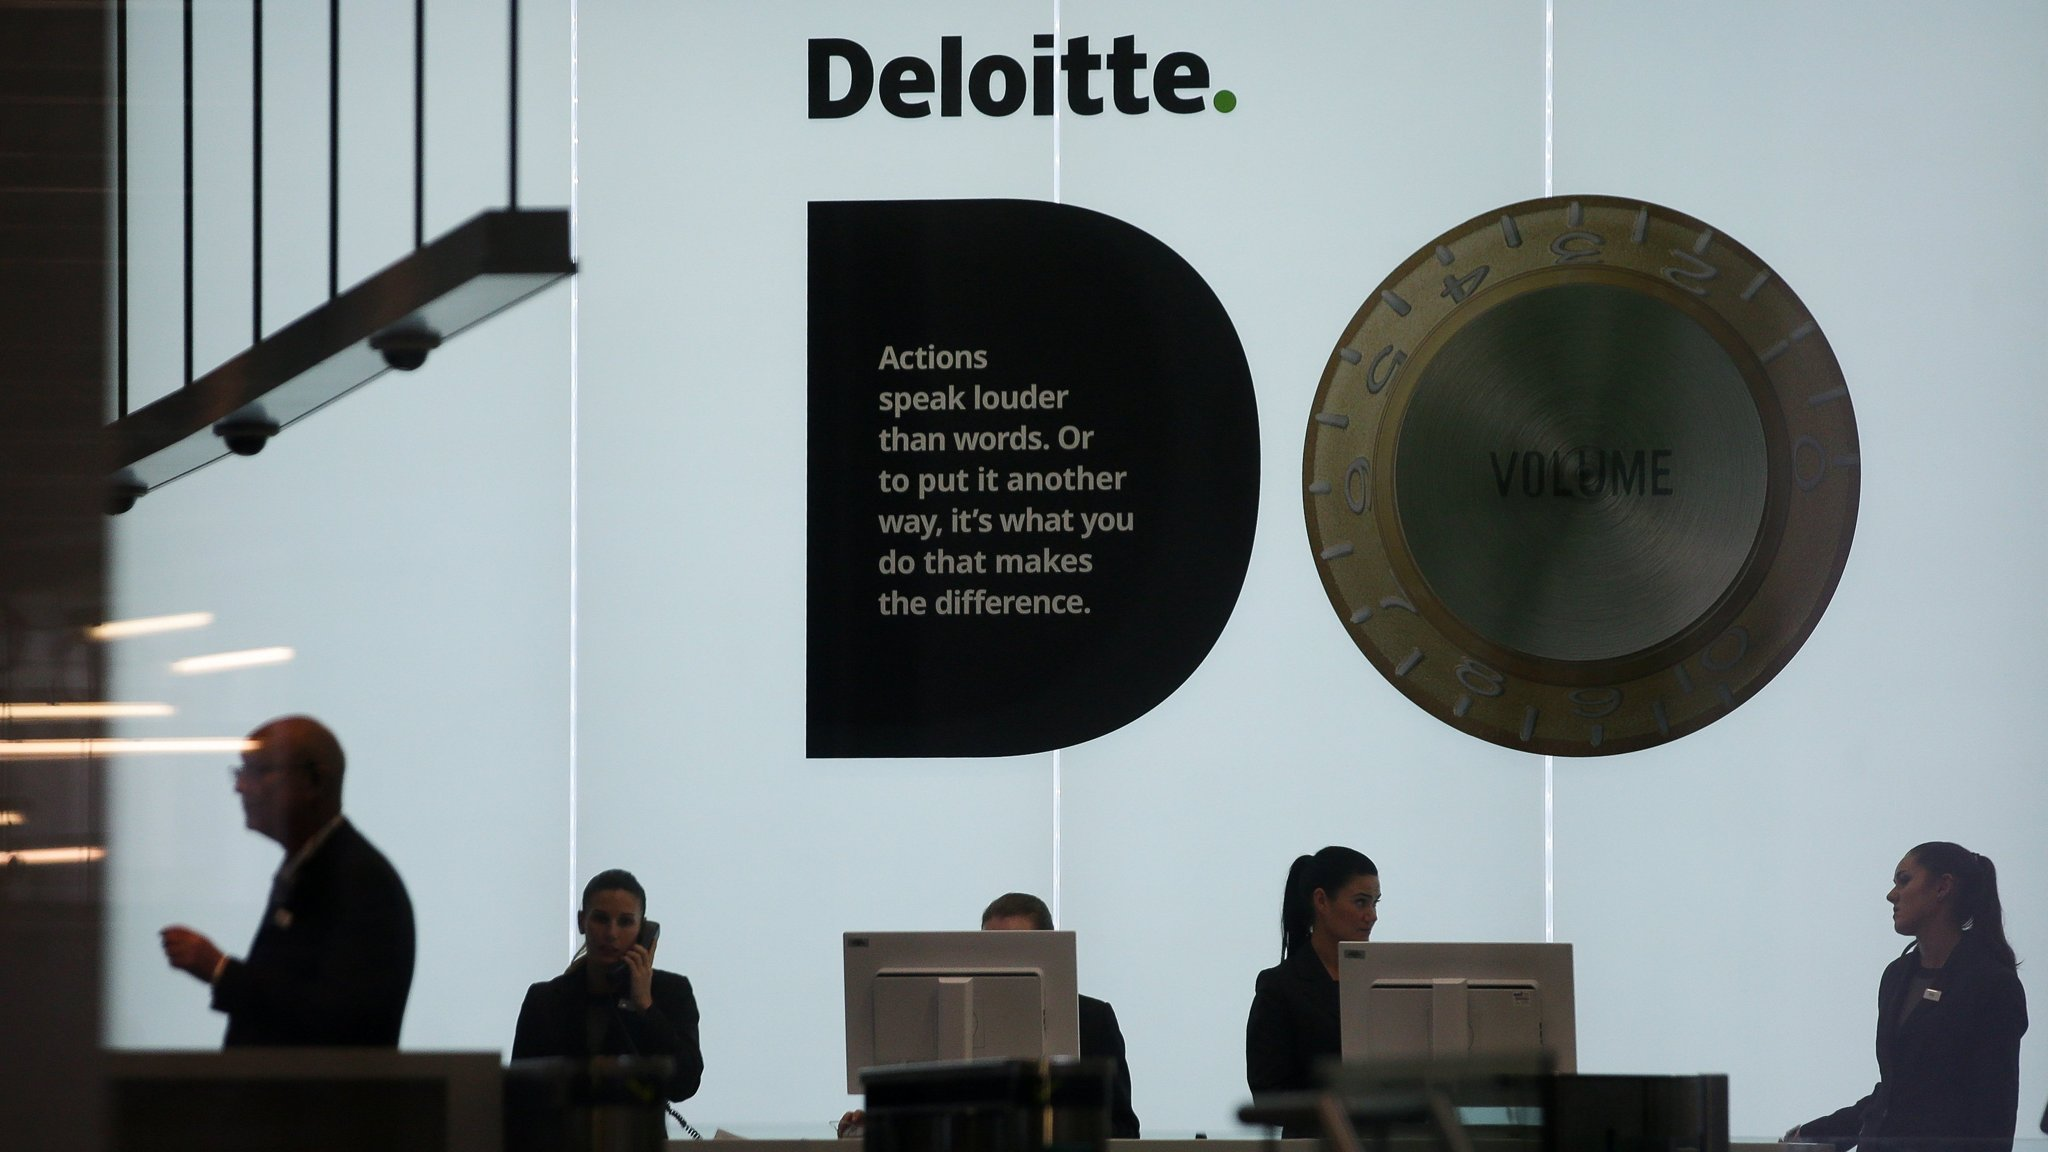 Deloitte has fired 20 UK partners for inappropriate